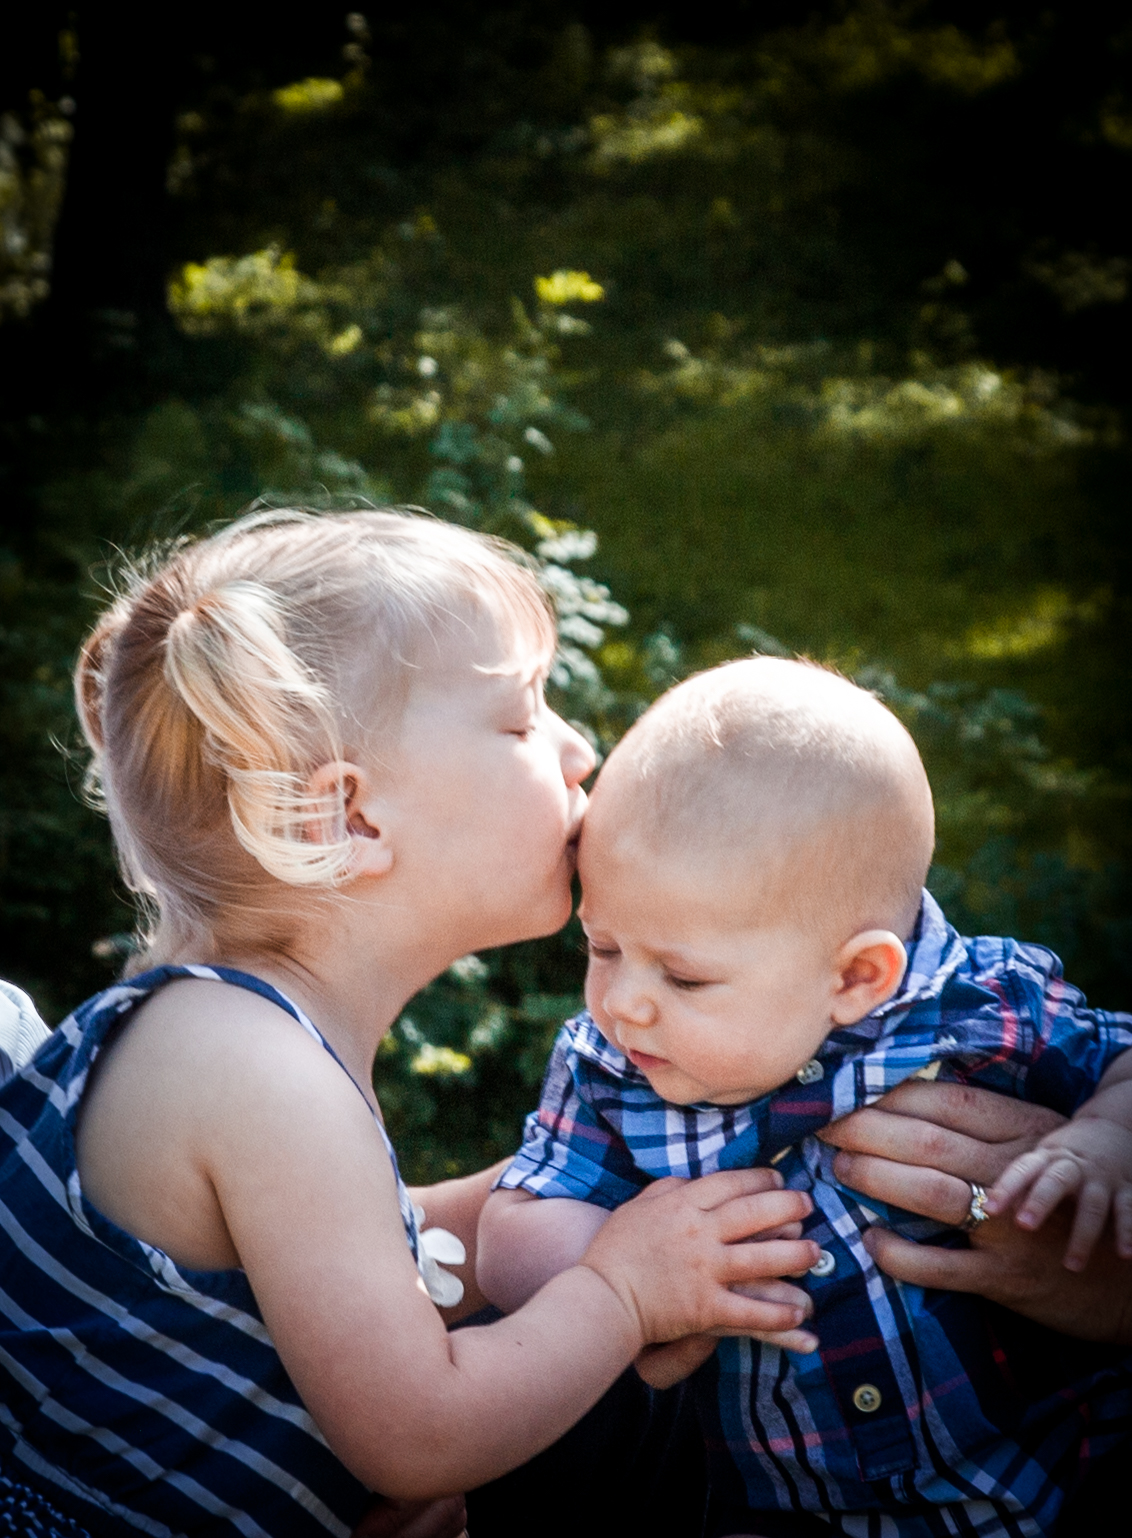 Sister kissing baby brother